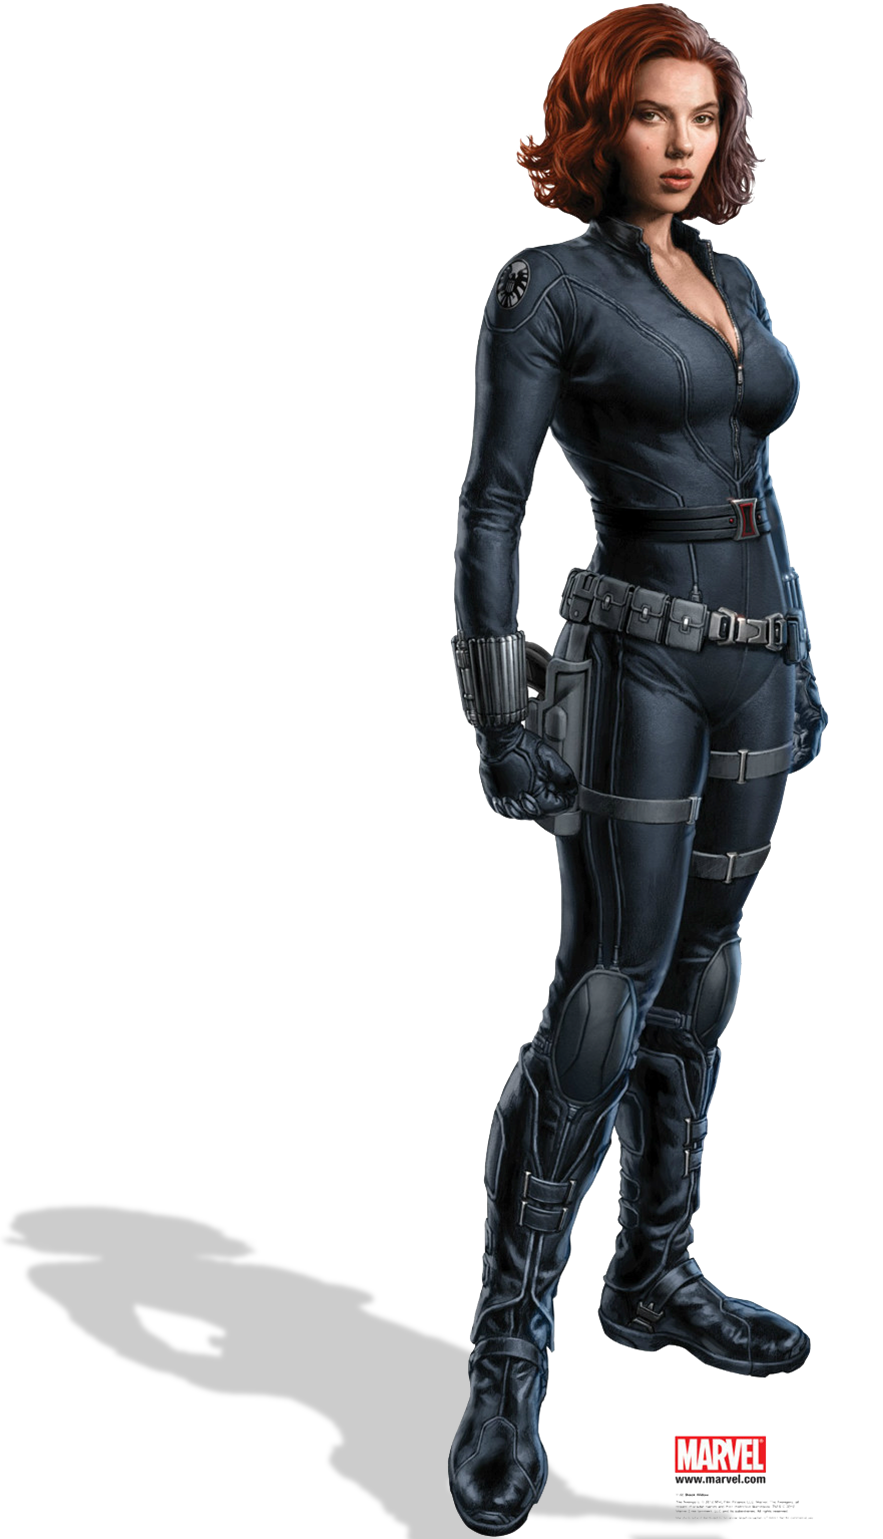 Black Widow Png Image PNG Image